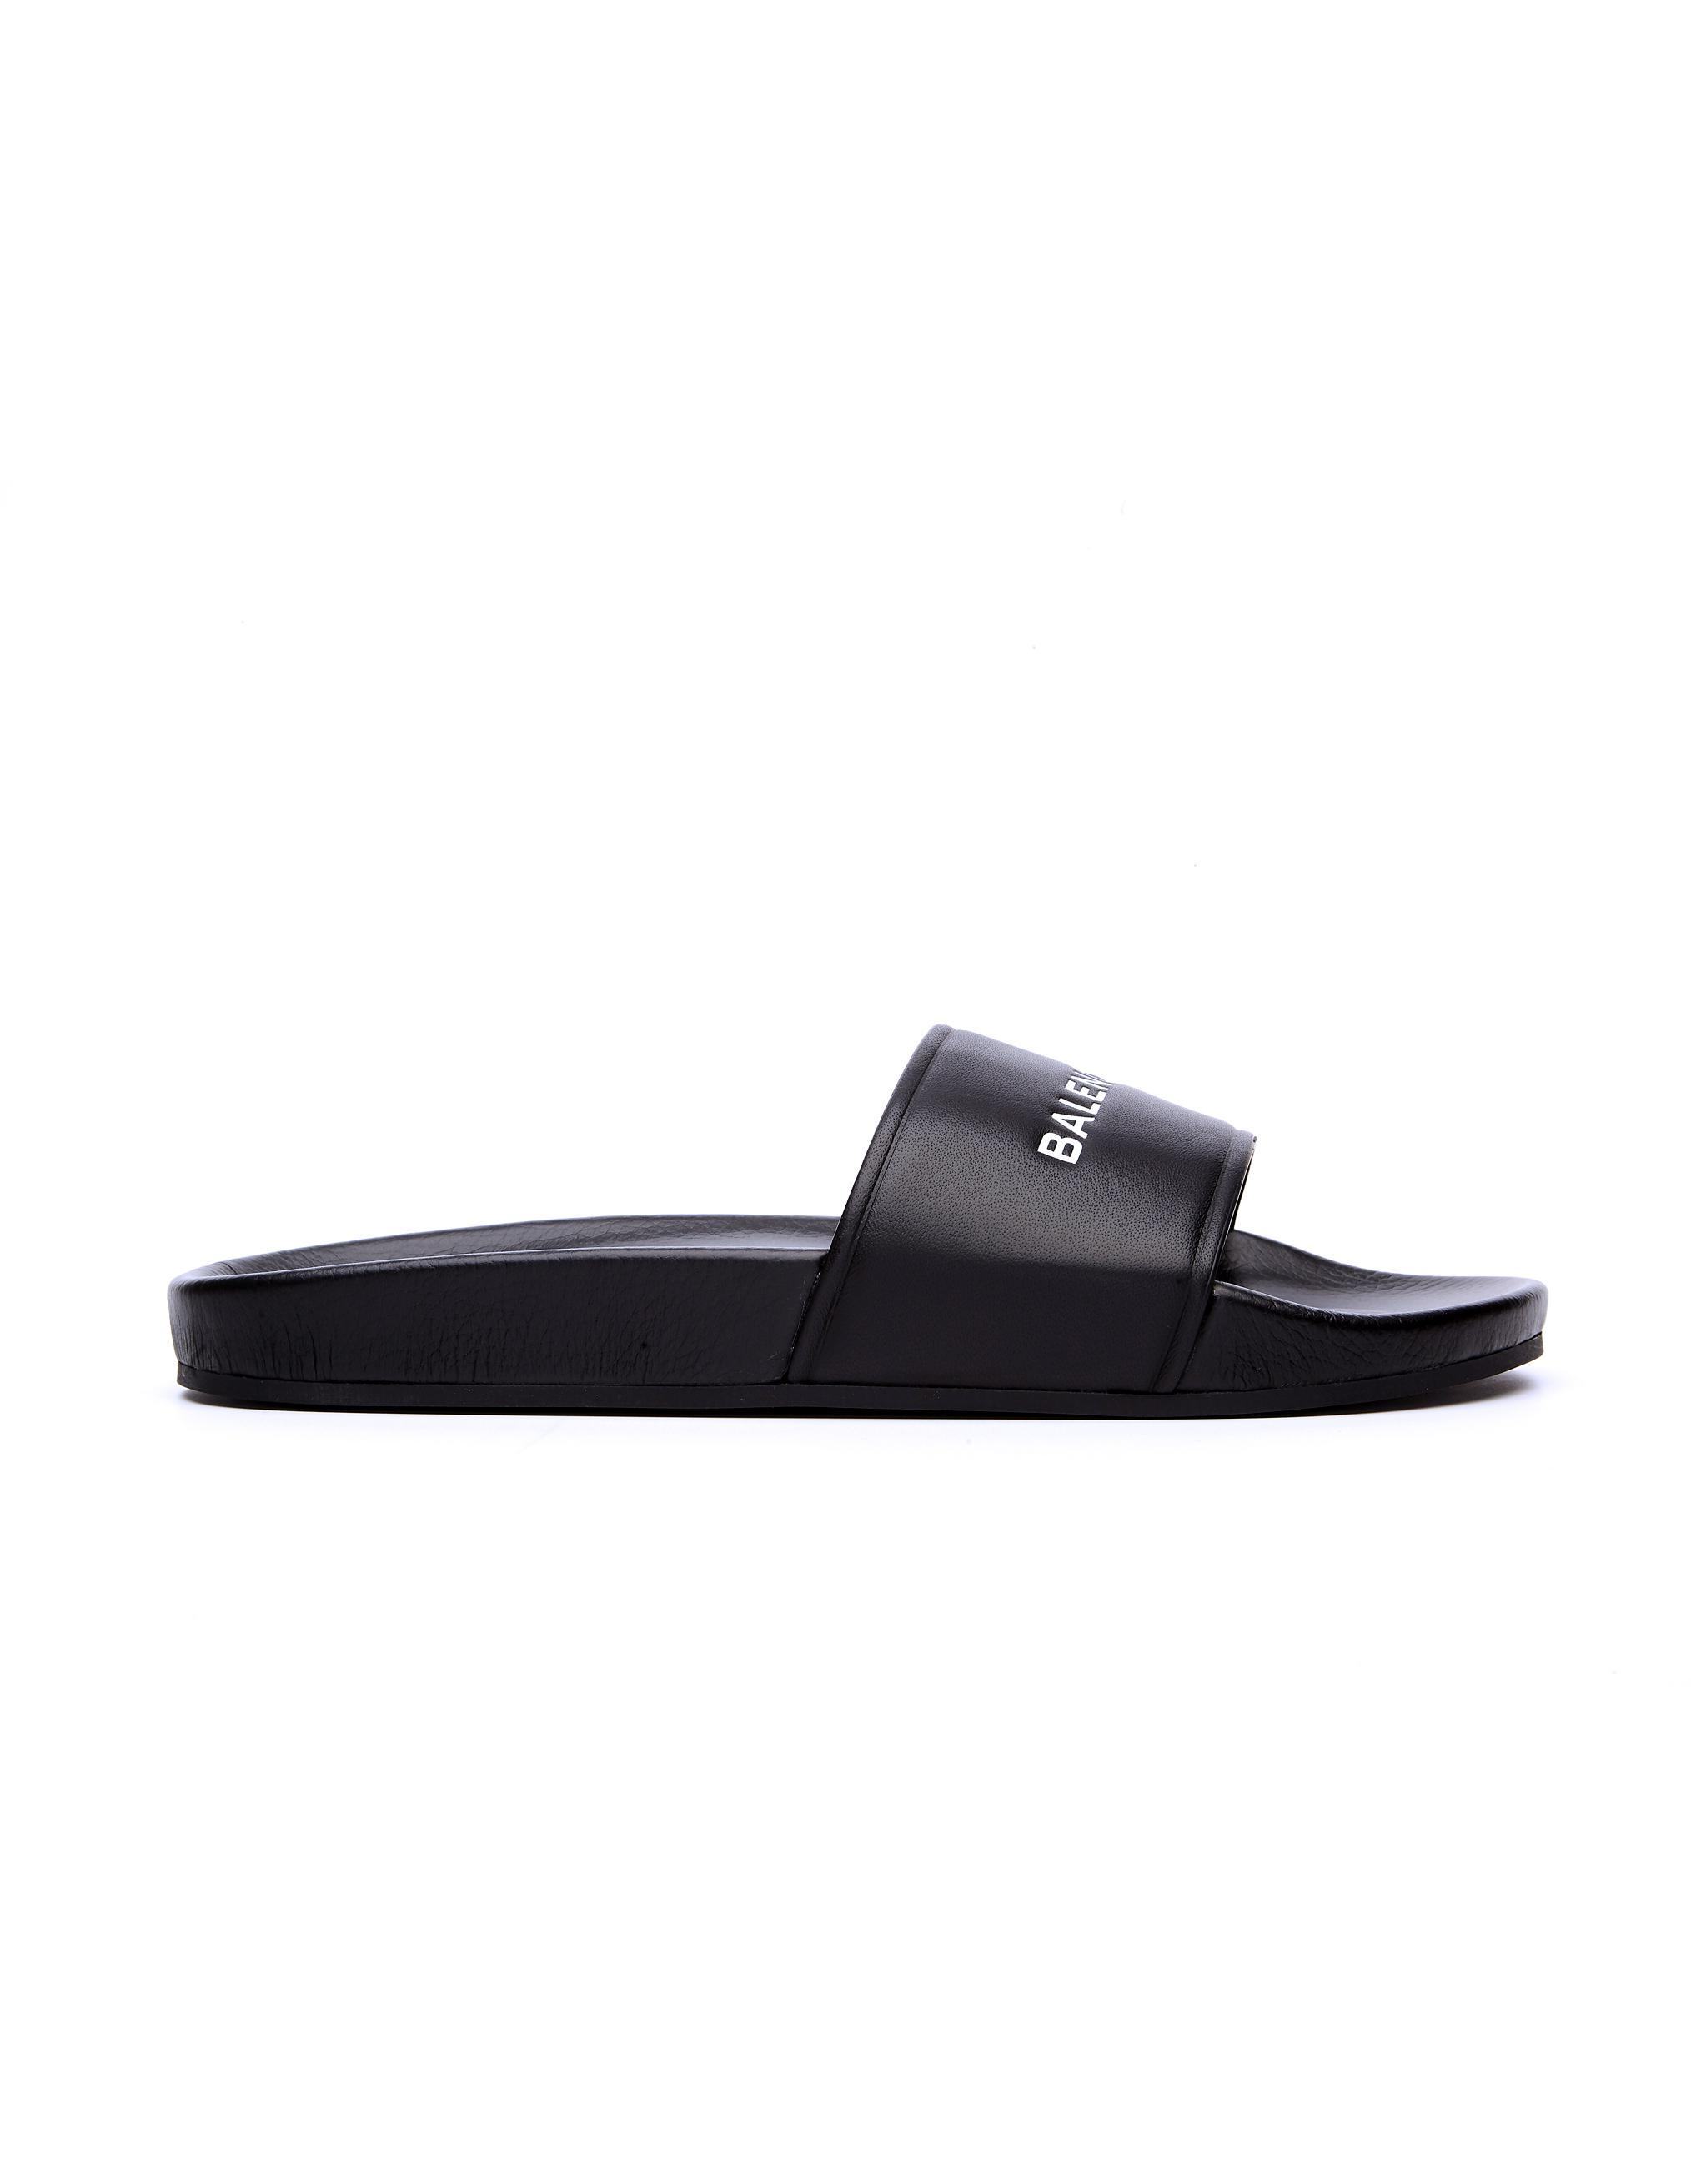 00ddf559d04e6 Lyst - Balenciaga Black Logo Sliders in Black for Men